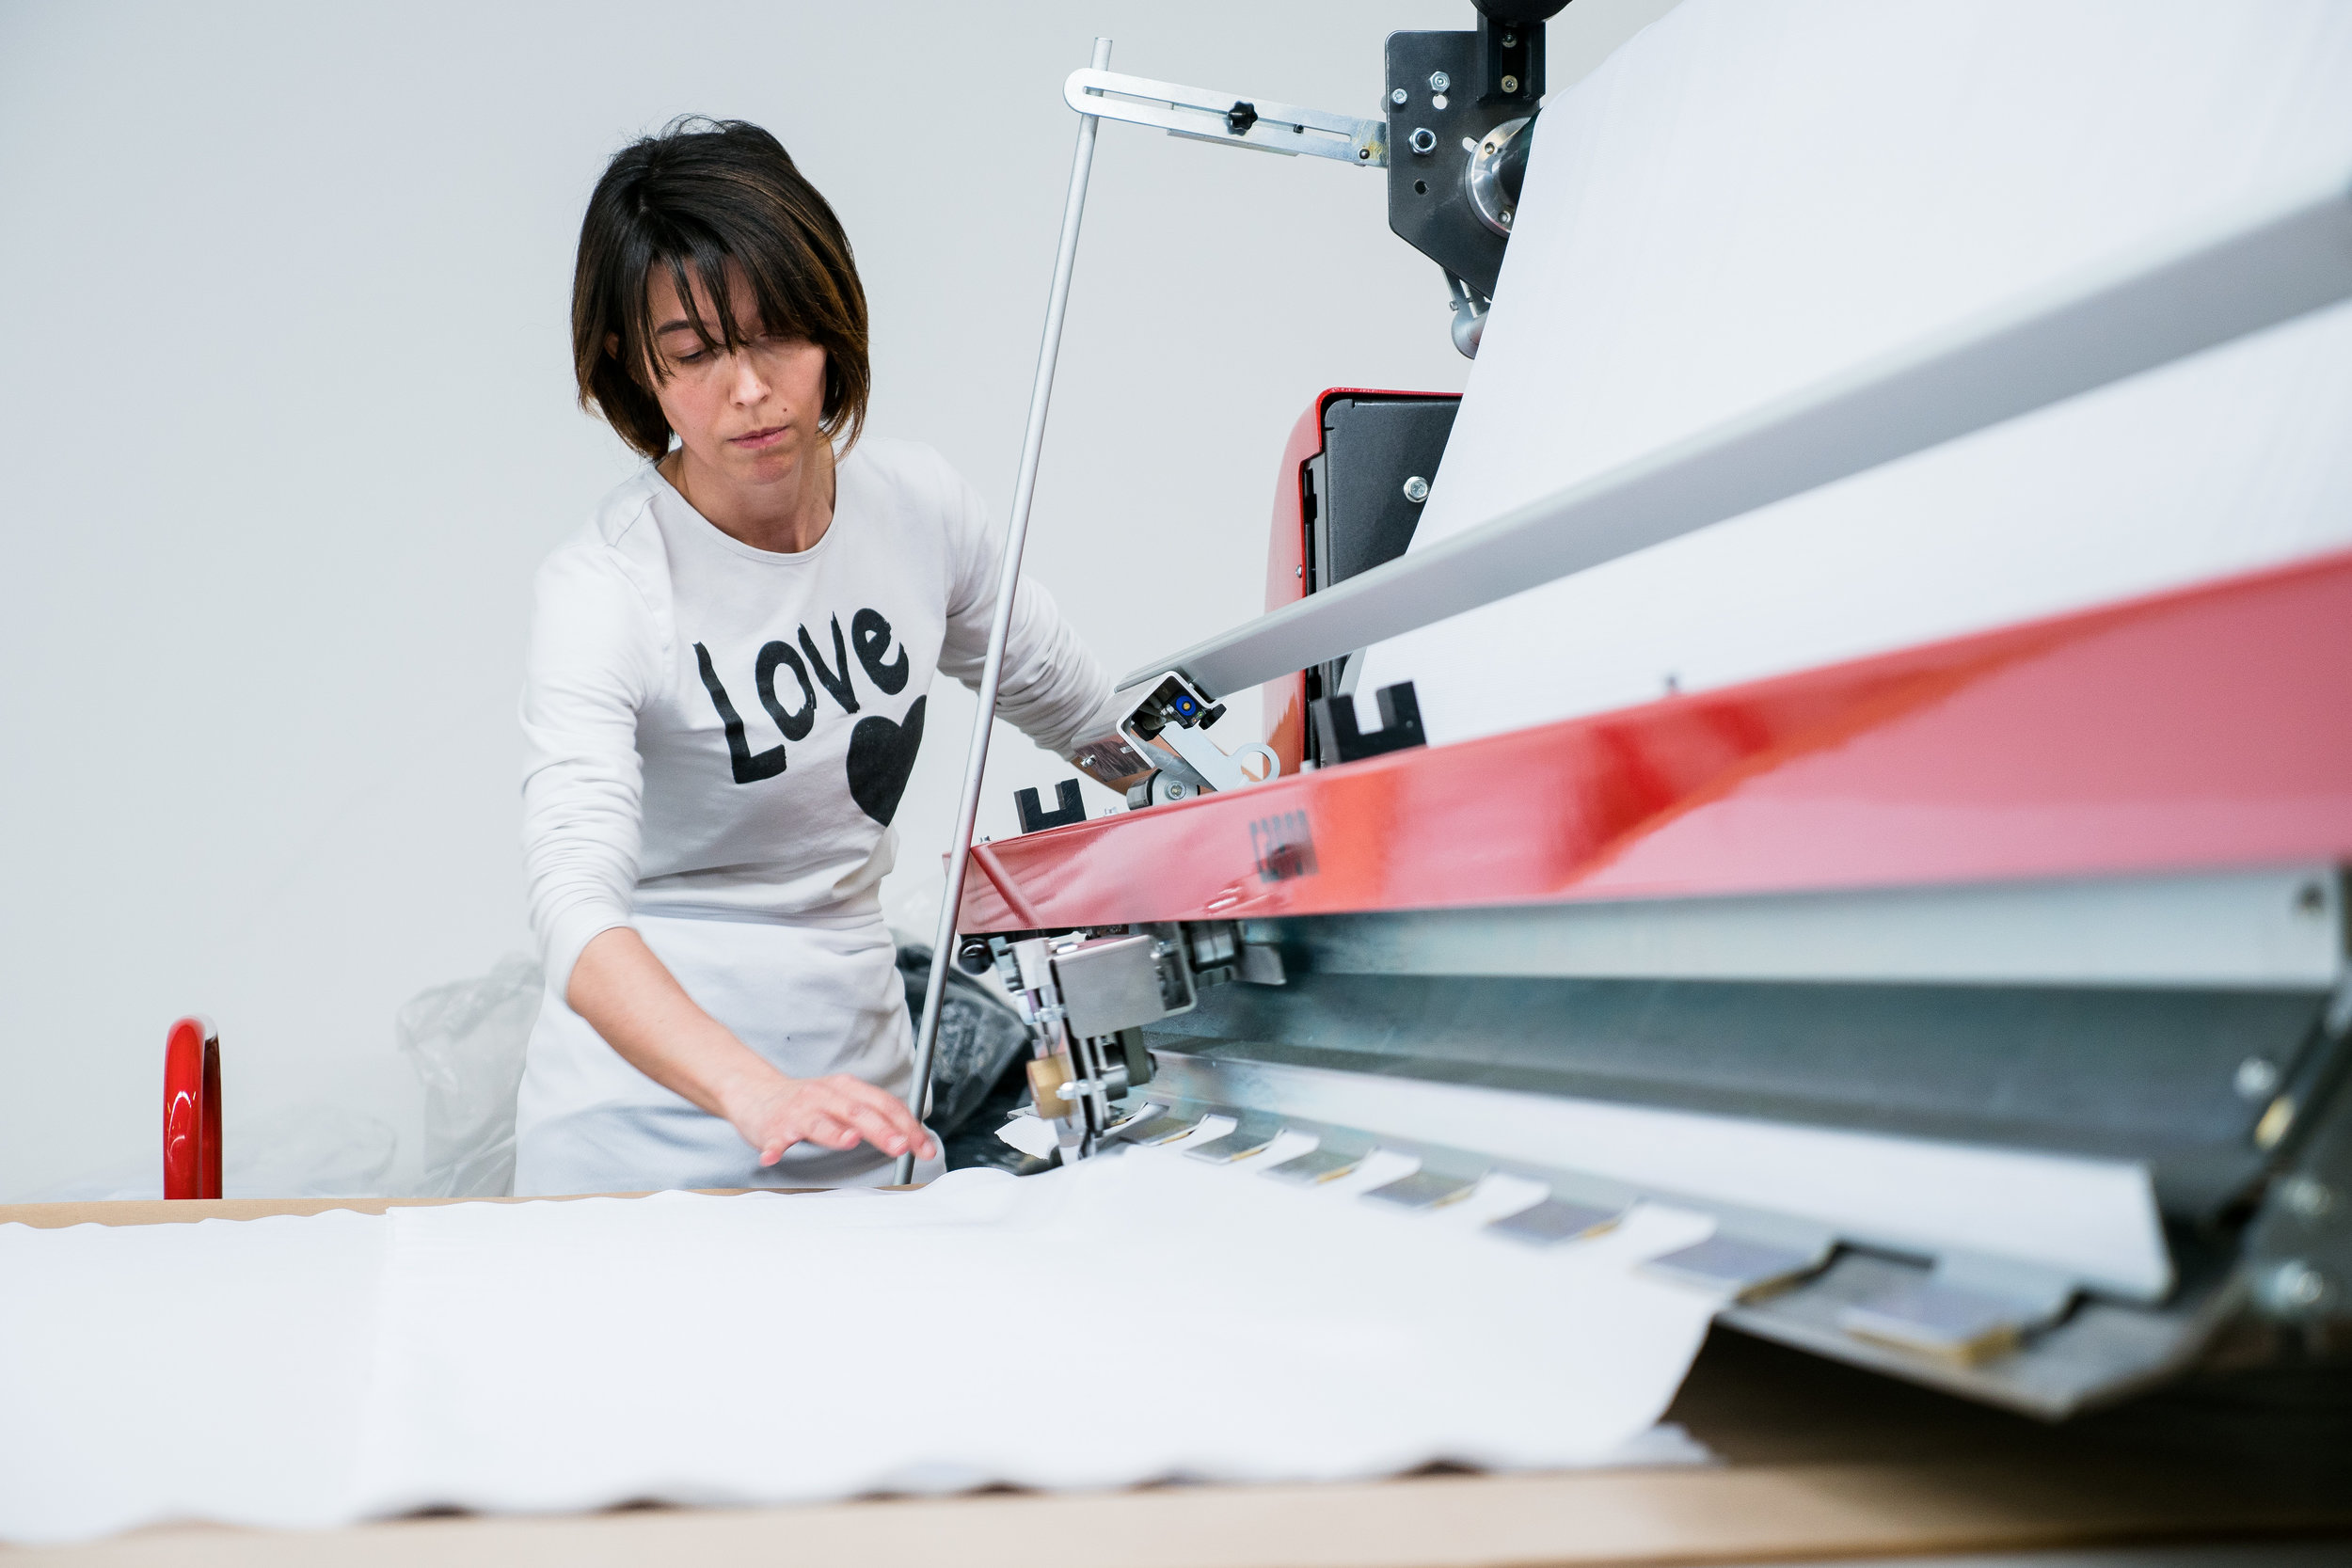 Production - Cut, print, and sew. All from our factory in Italy.Each garment is handmade to order, with the utmost care and attention to detail.Production time runs approximately 8 weeks.